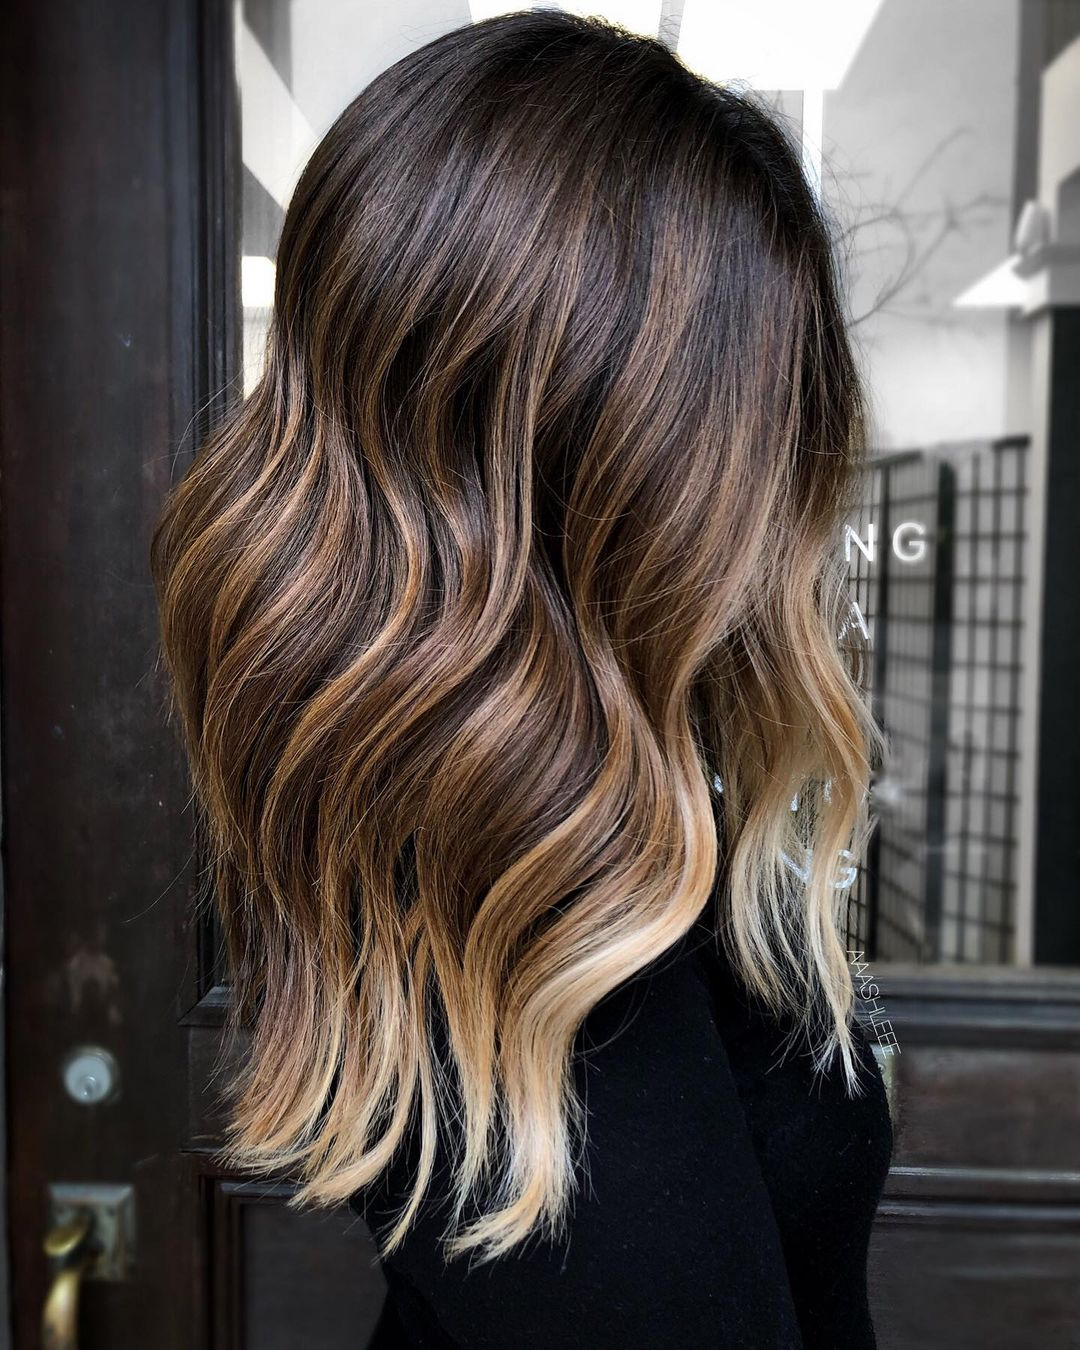 Chocolate Hair with Caramel and Blonde Highlights